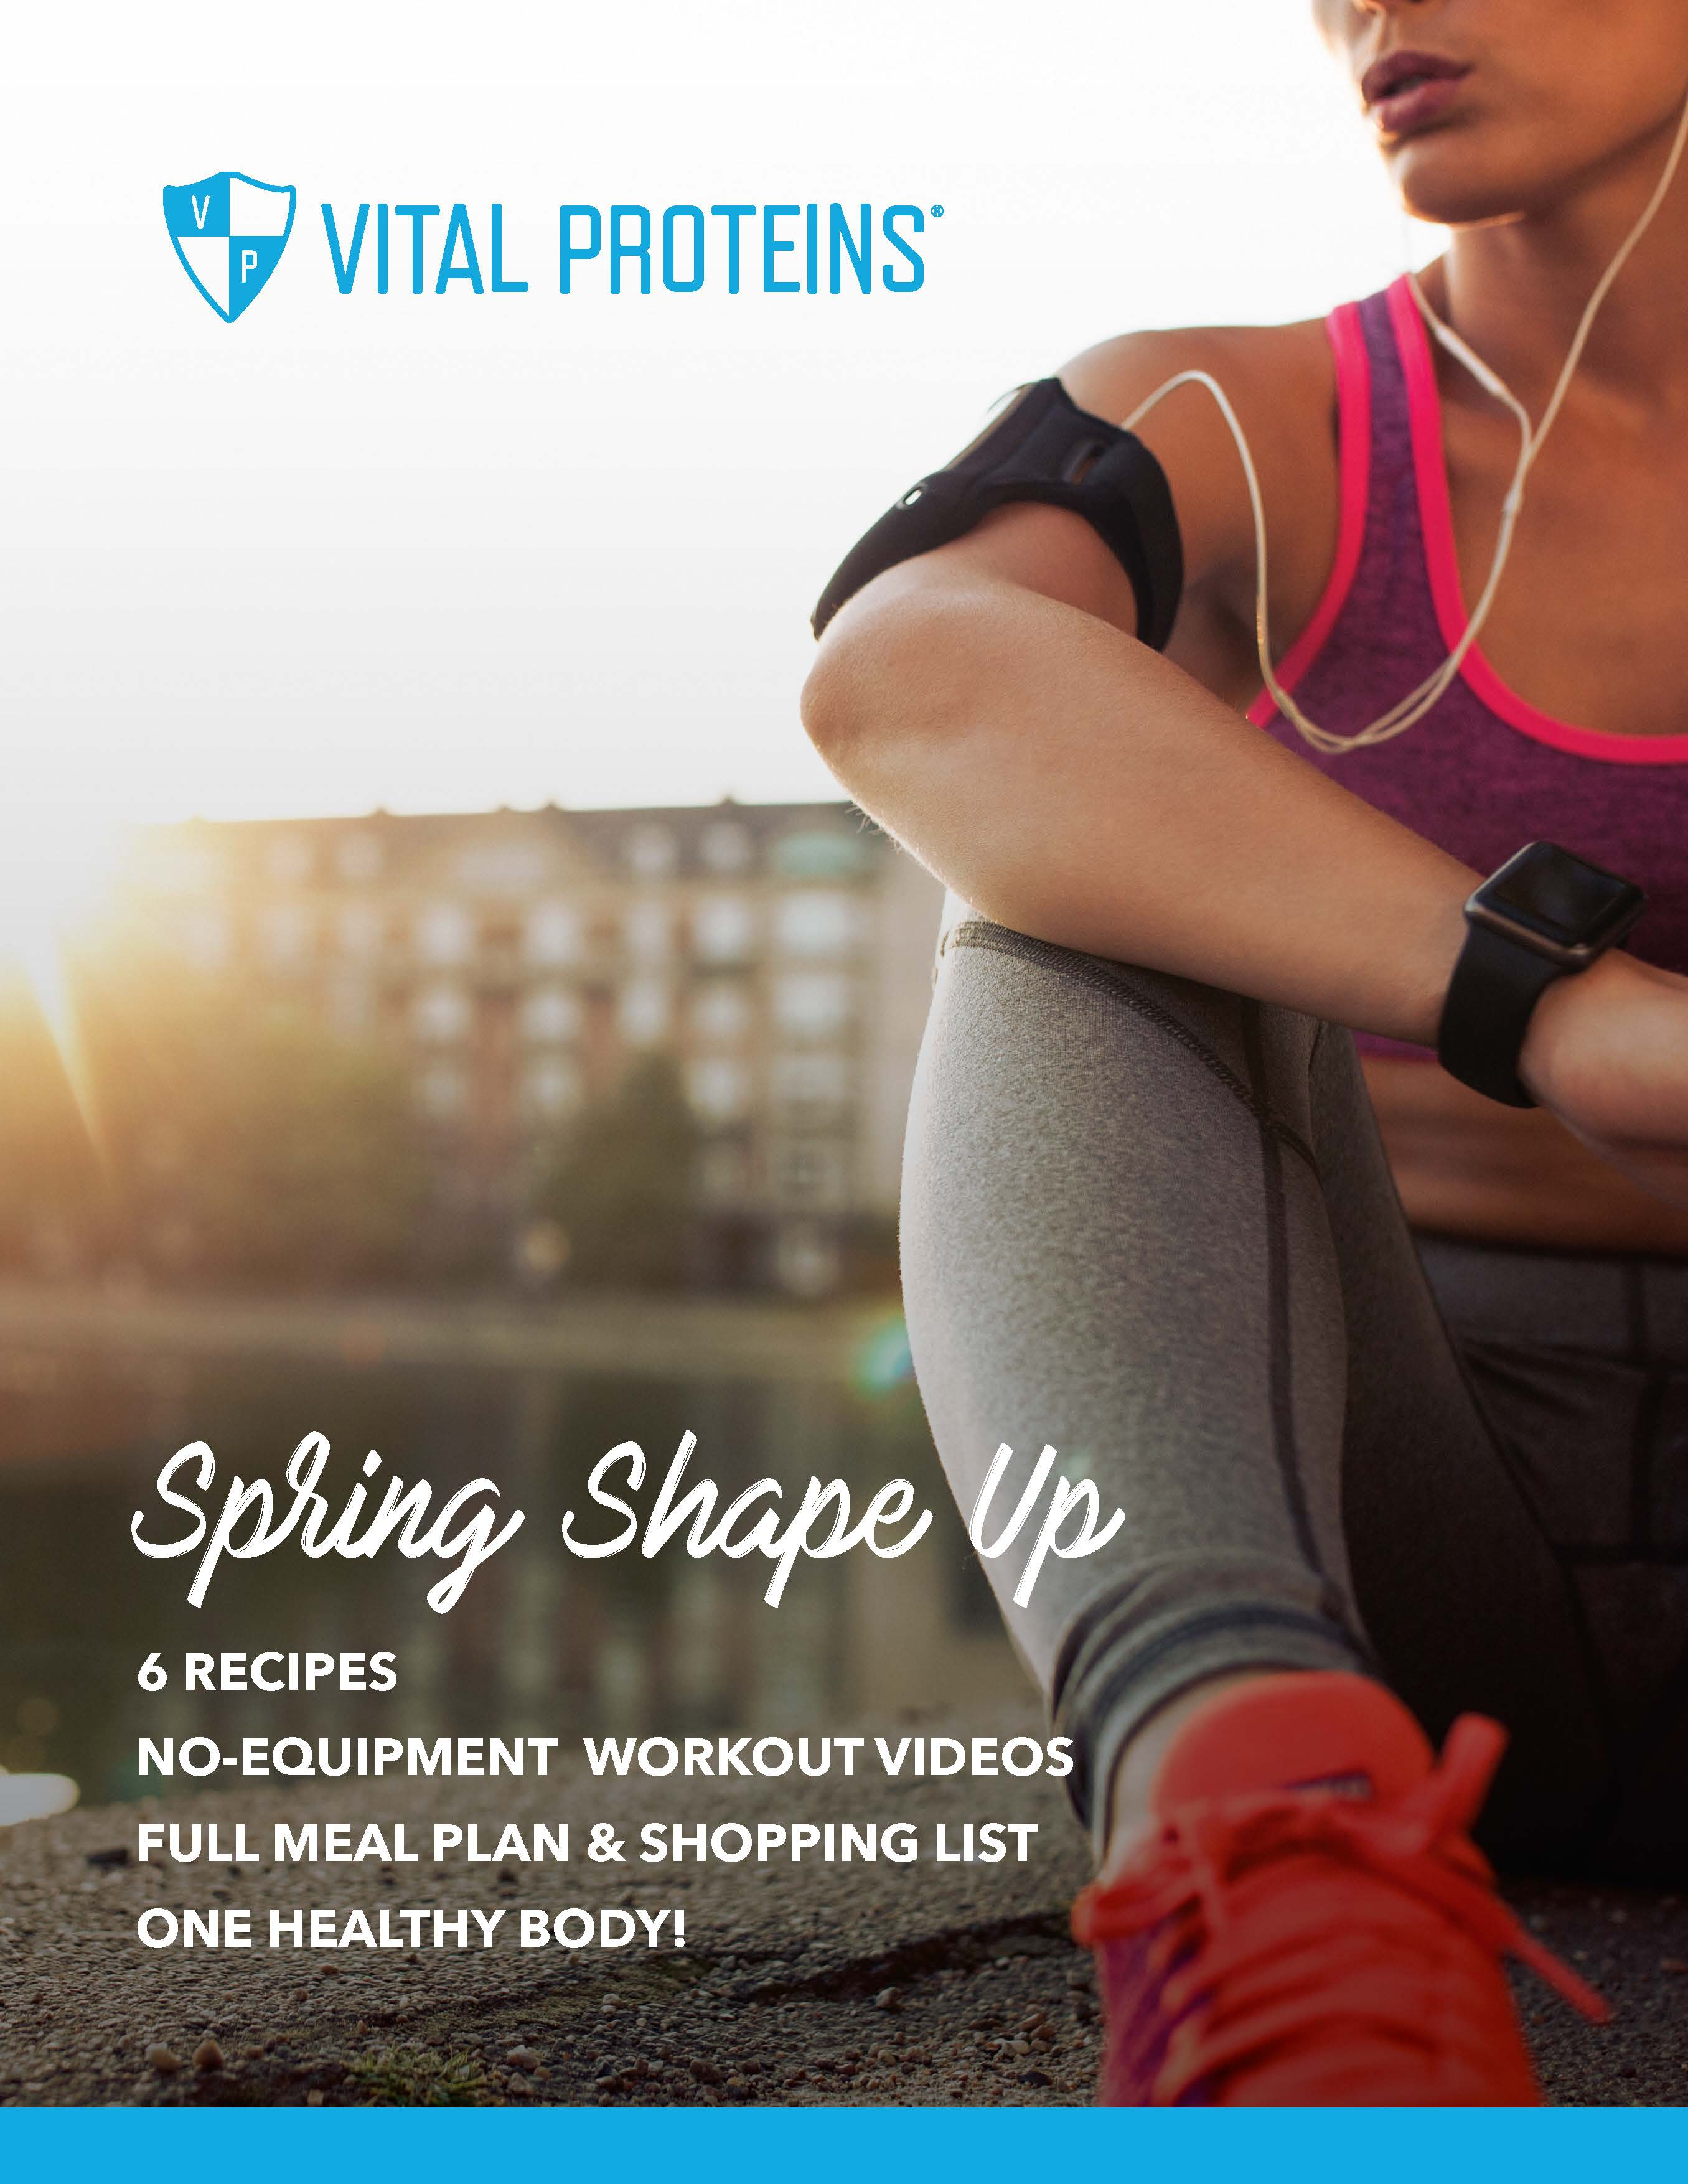 Vital Proteins Spring Shape Up- In Stock at Mission Accomplished